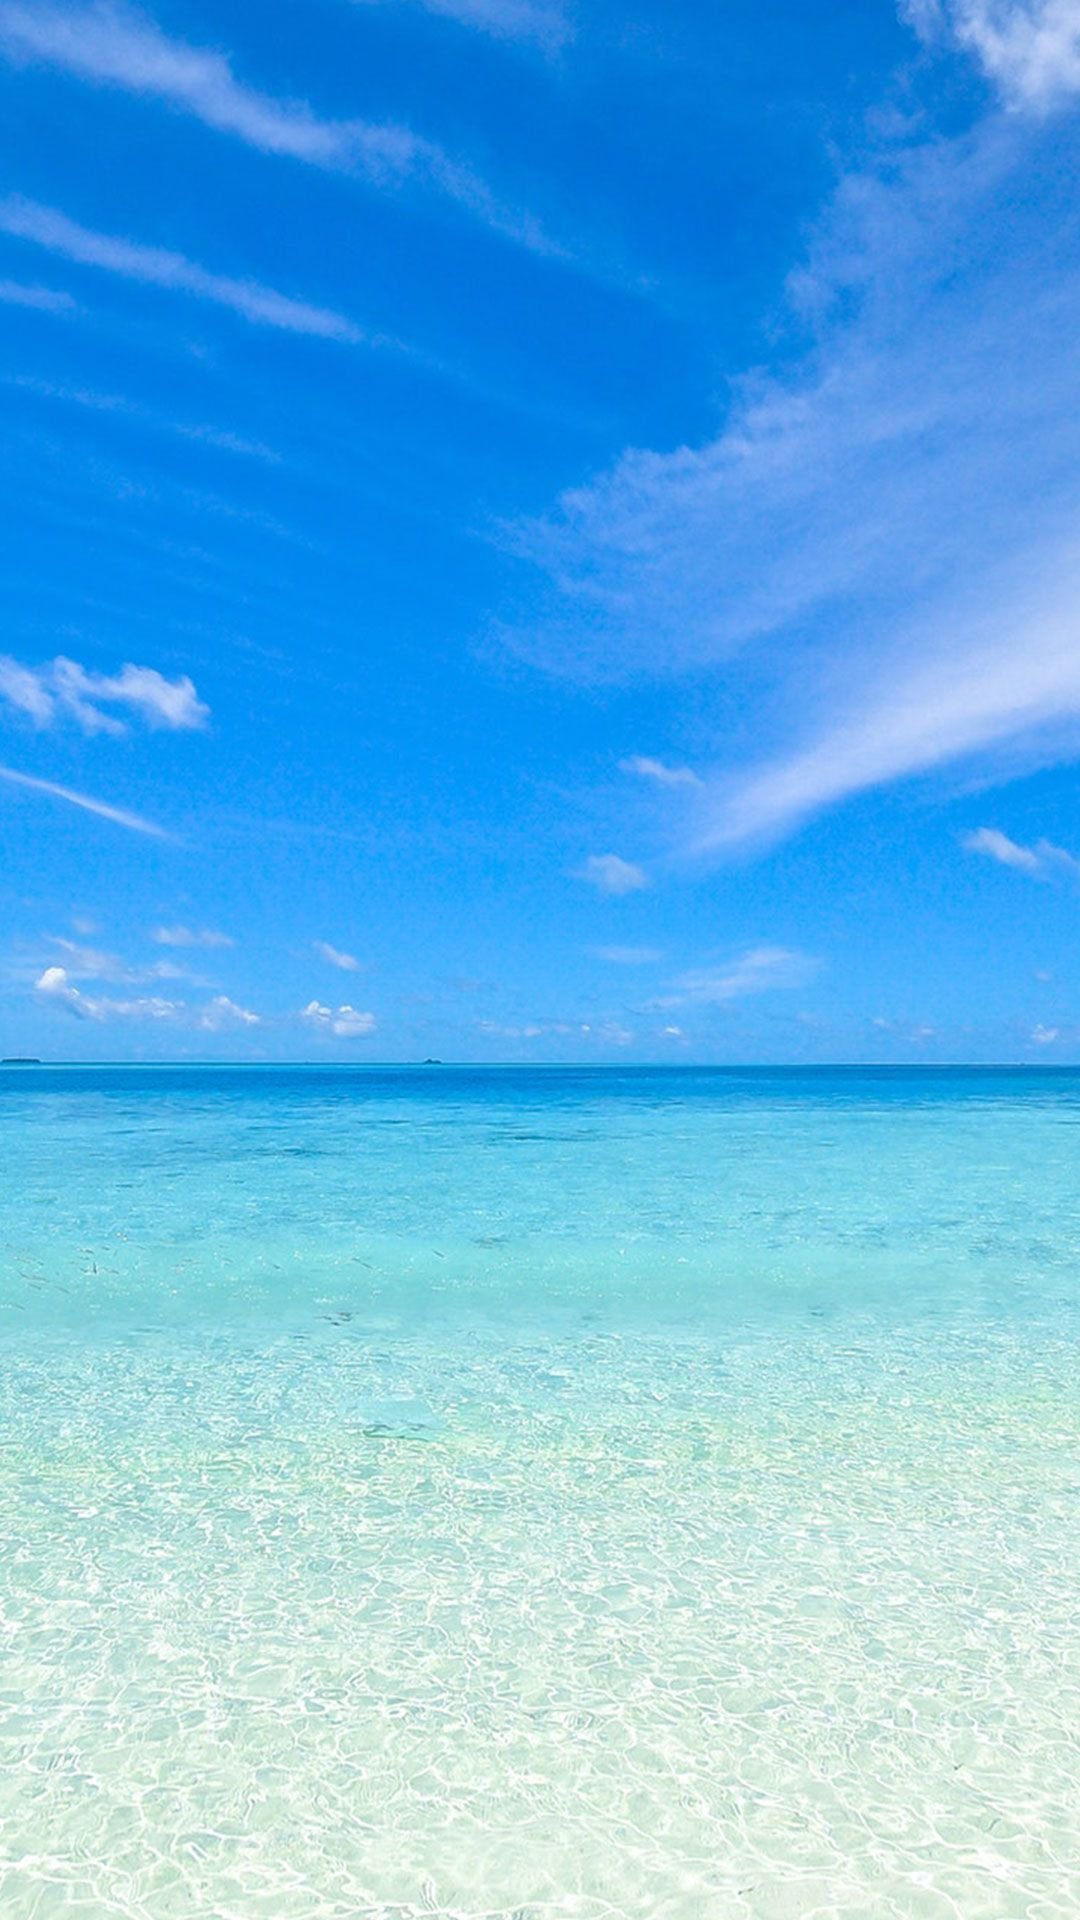 116 Free Beach Wallpapers For Your Phone Desktop In 2020 Ocean Wallpaper Beach Wallpaper Beach Wallpaper Iphone